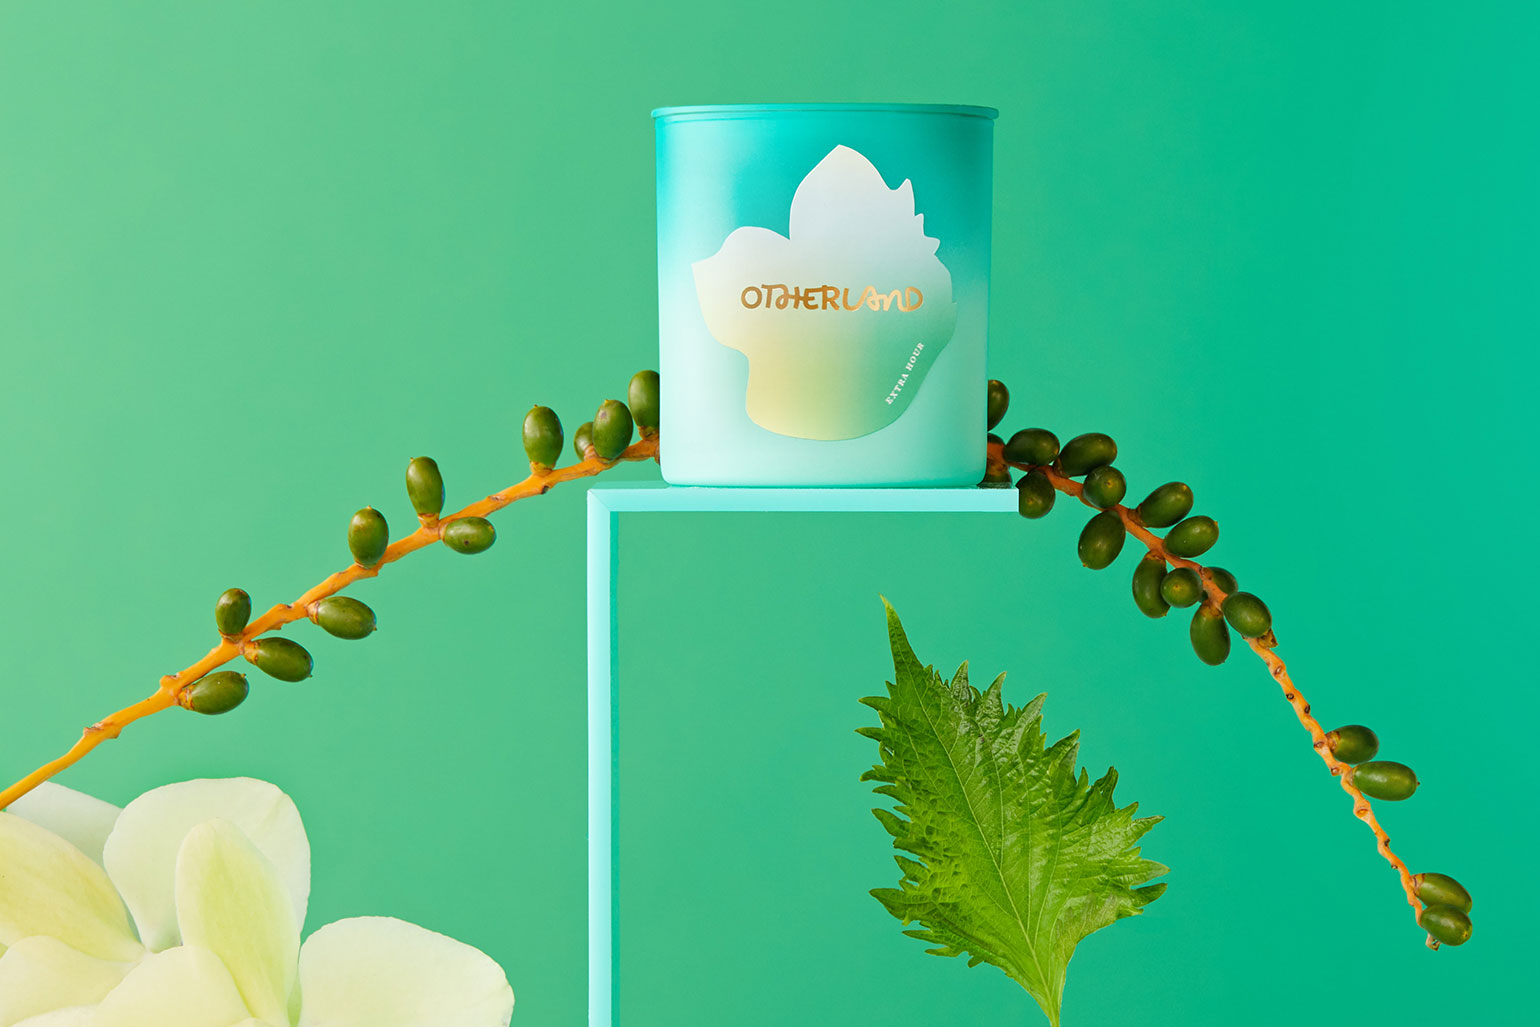 Otherland: Branding & packaging experience for a scented candle company